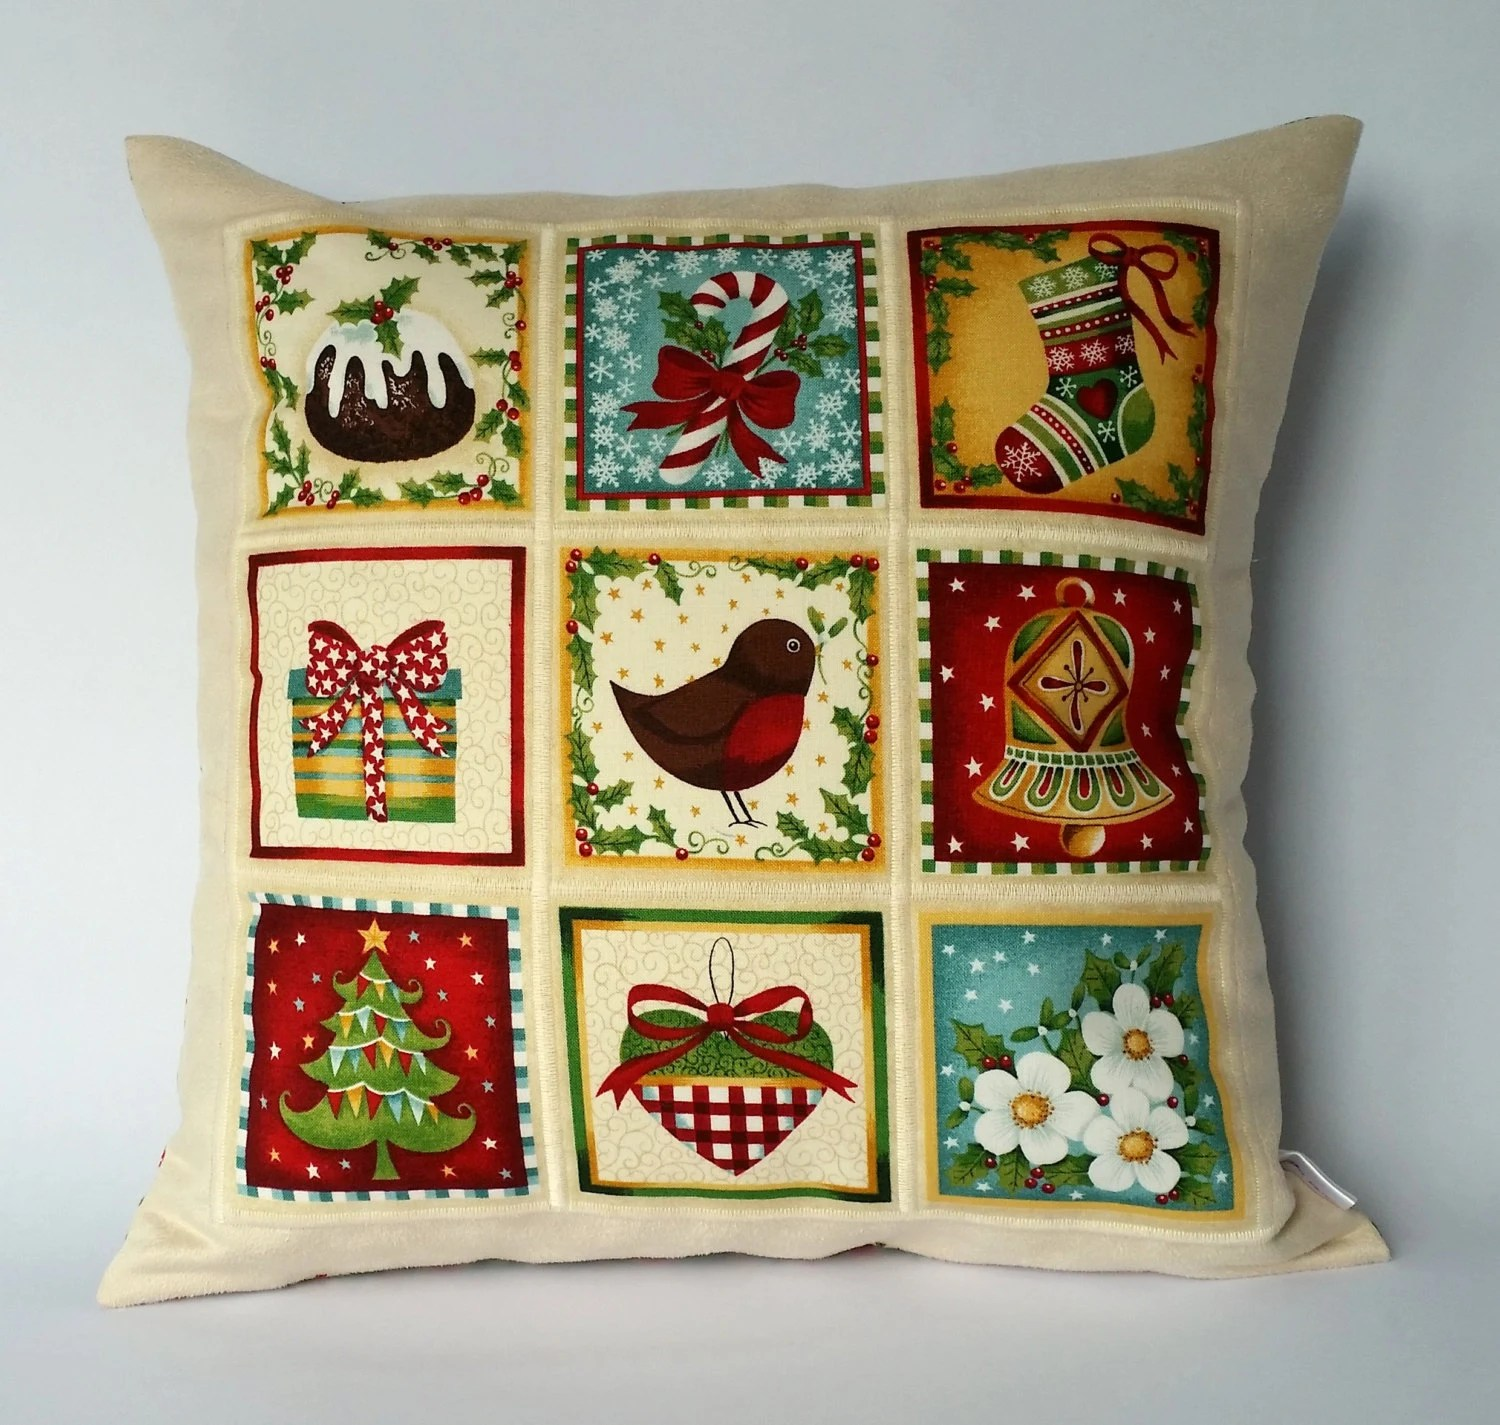 Cushion Covers Christmas Christmas Patchwork Panel Cushion Cover Christmas Pillow